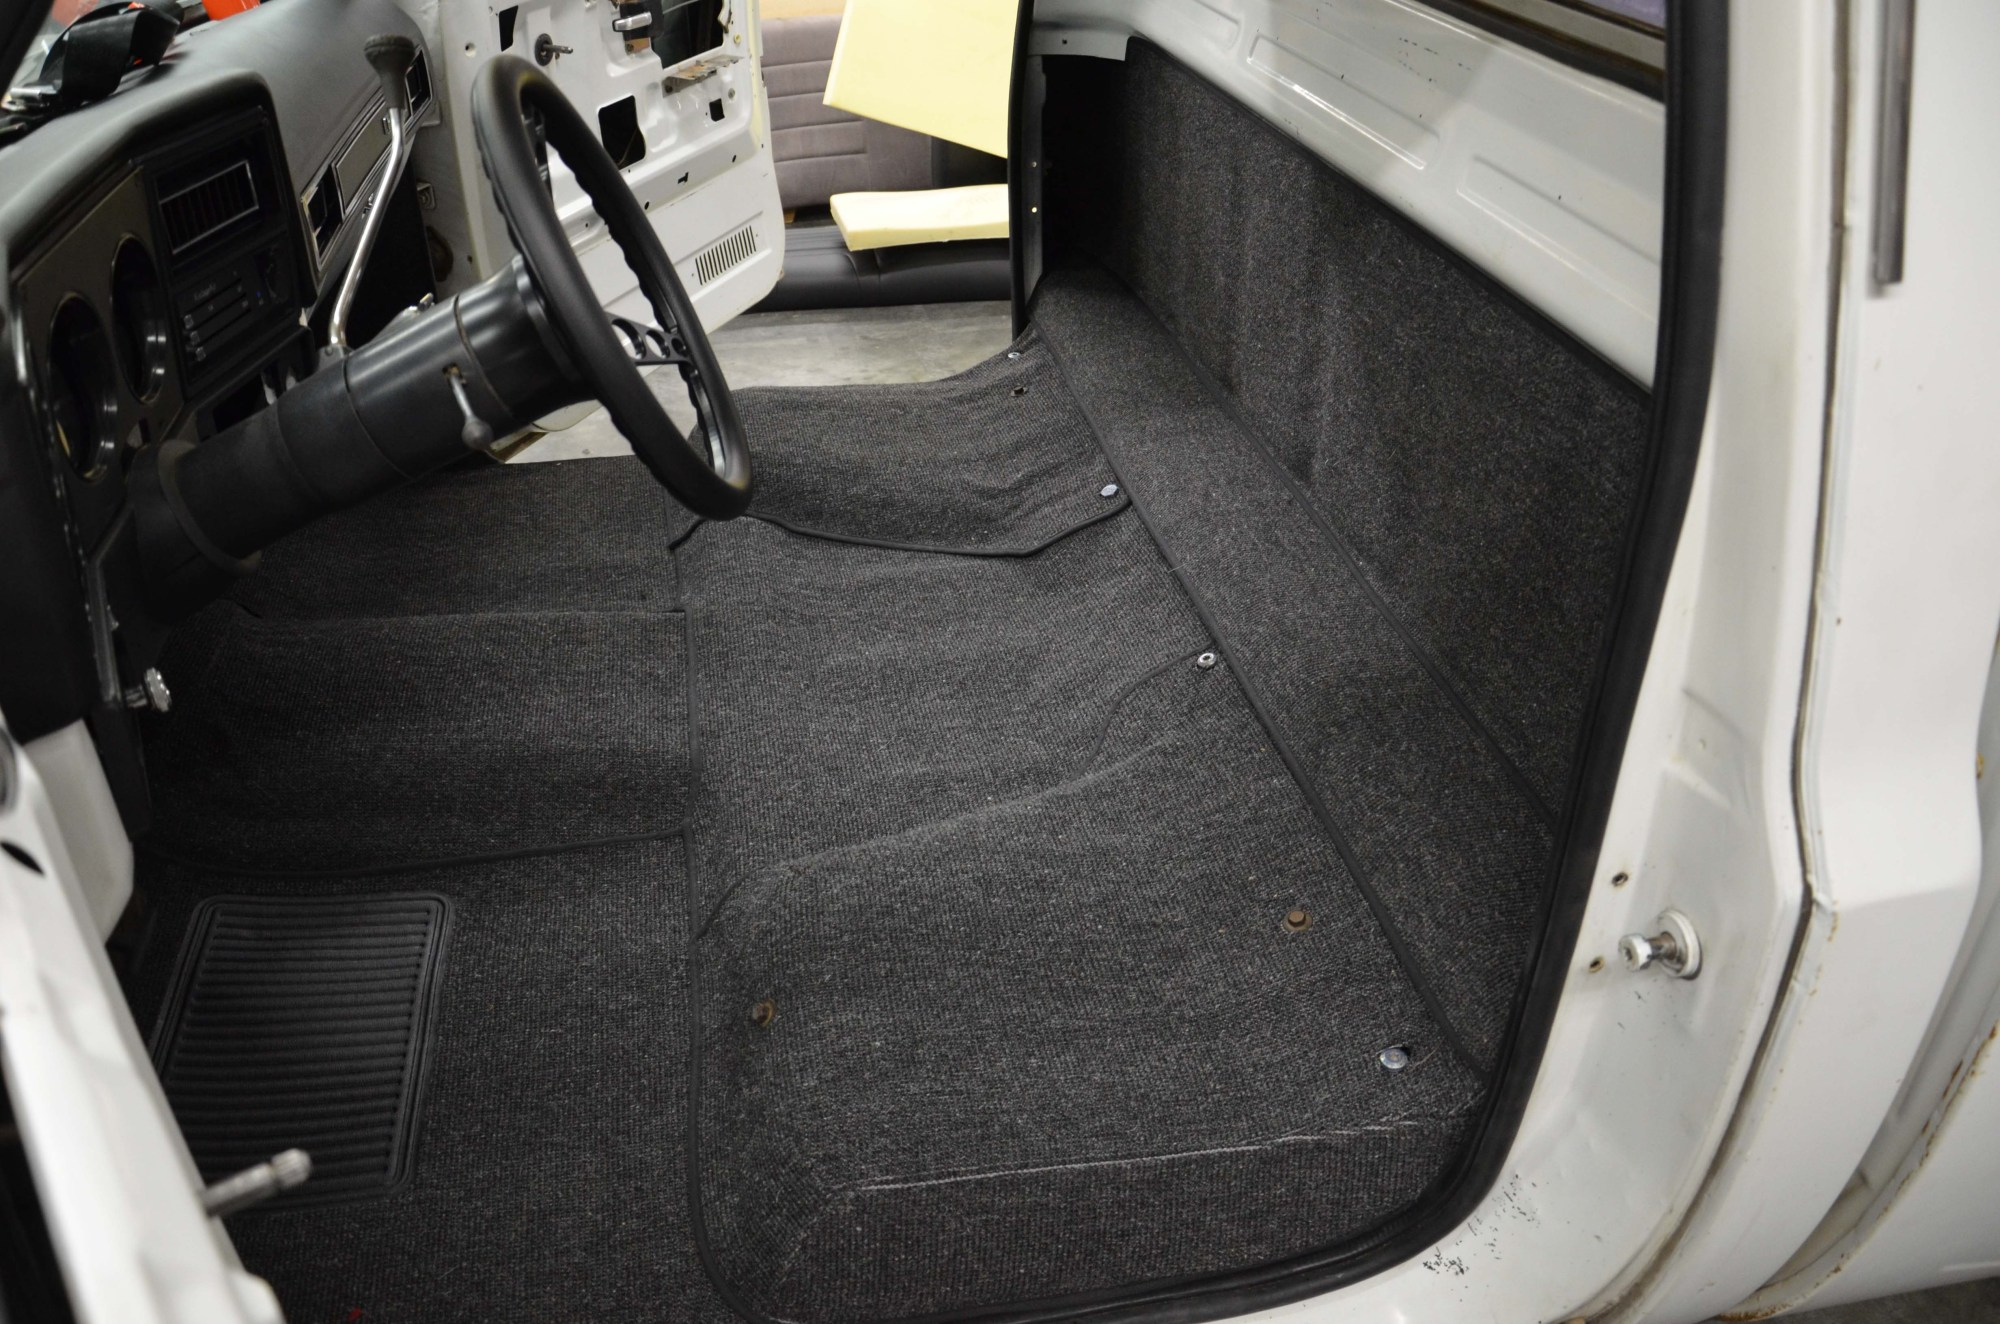 hight resolution of tmi s carpet kit extends up the rear of the cab behind the seats for a finished